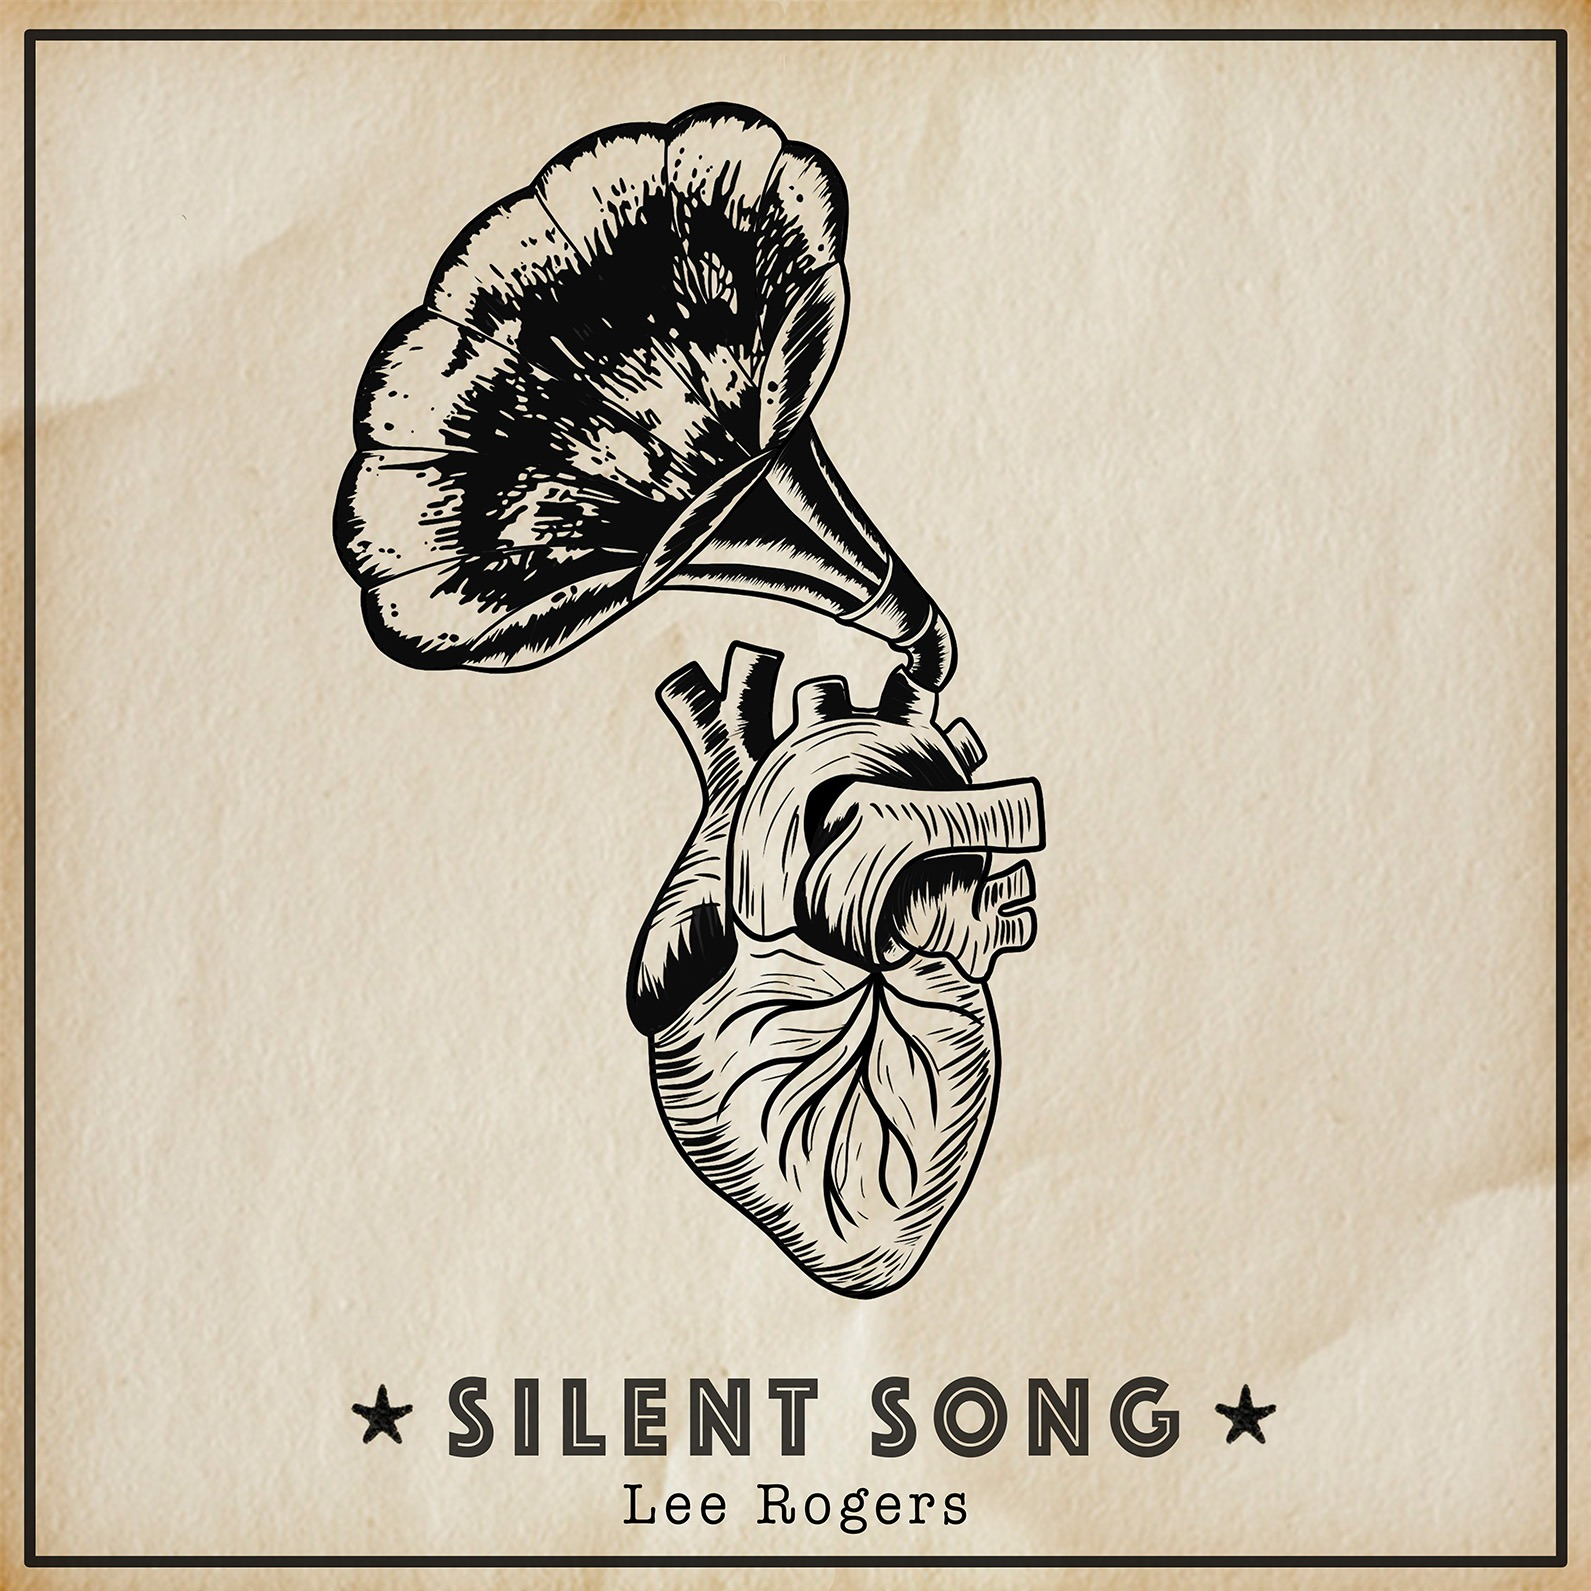 LEE ROGERS shares new single 'Silent Song' - Listen Now